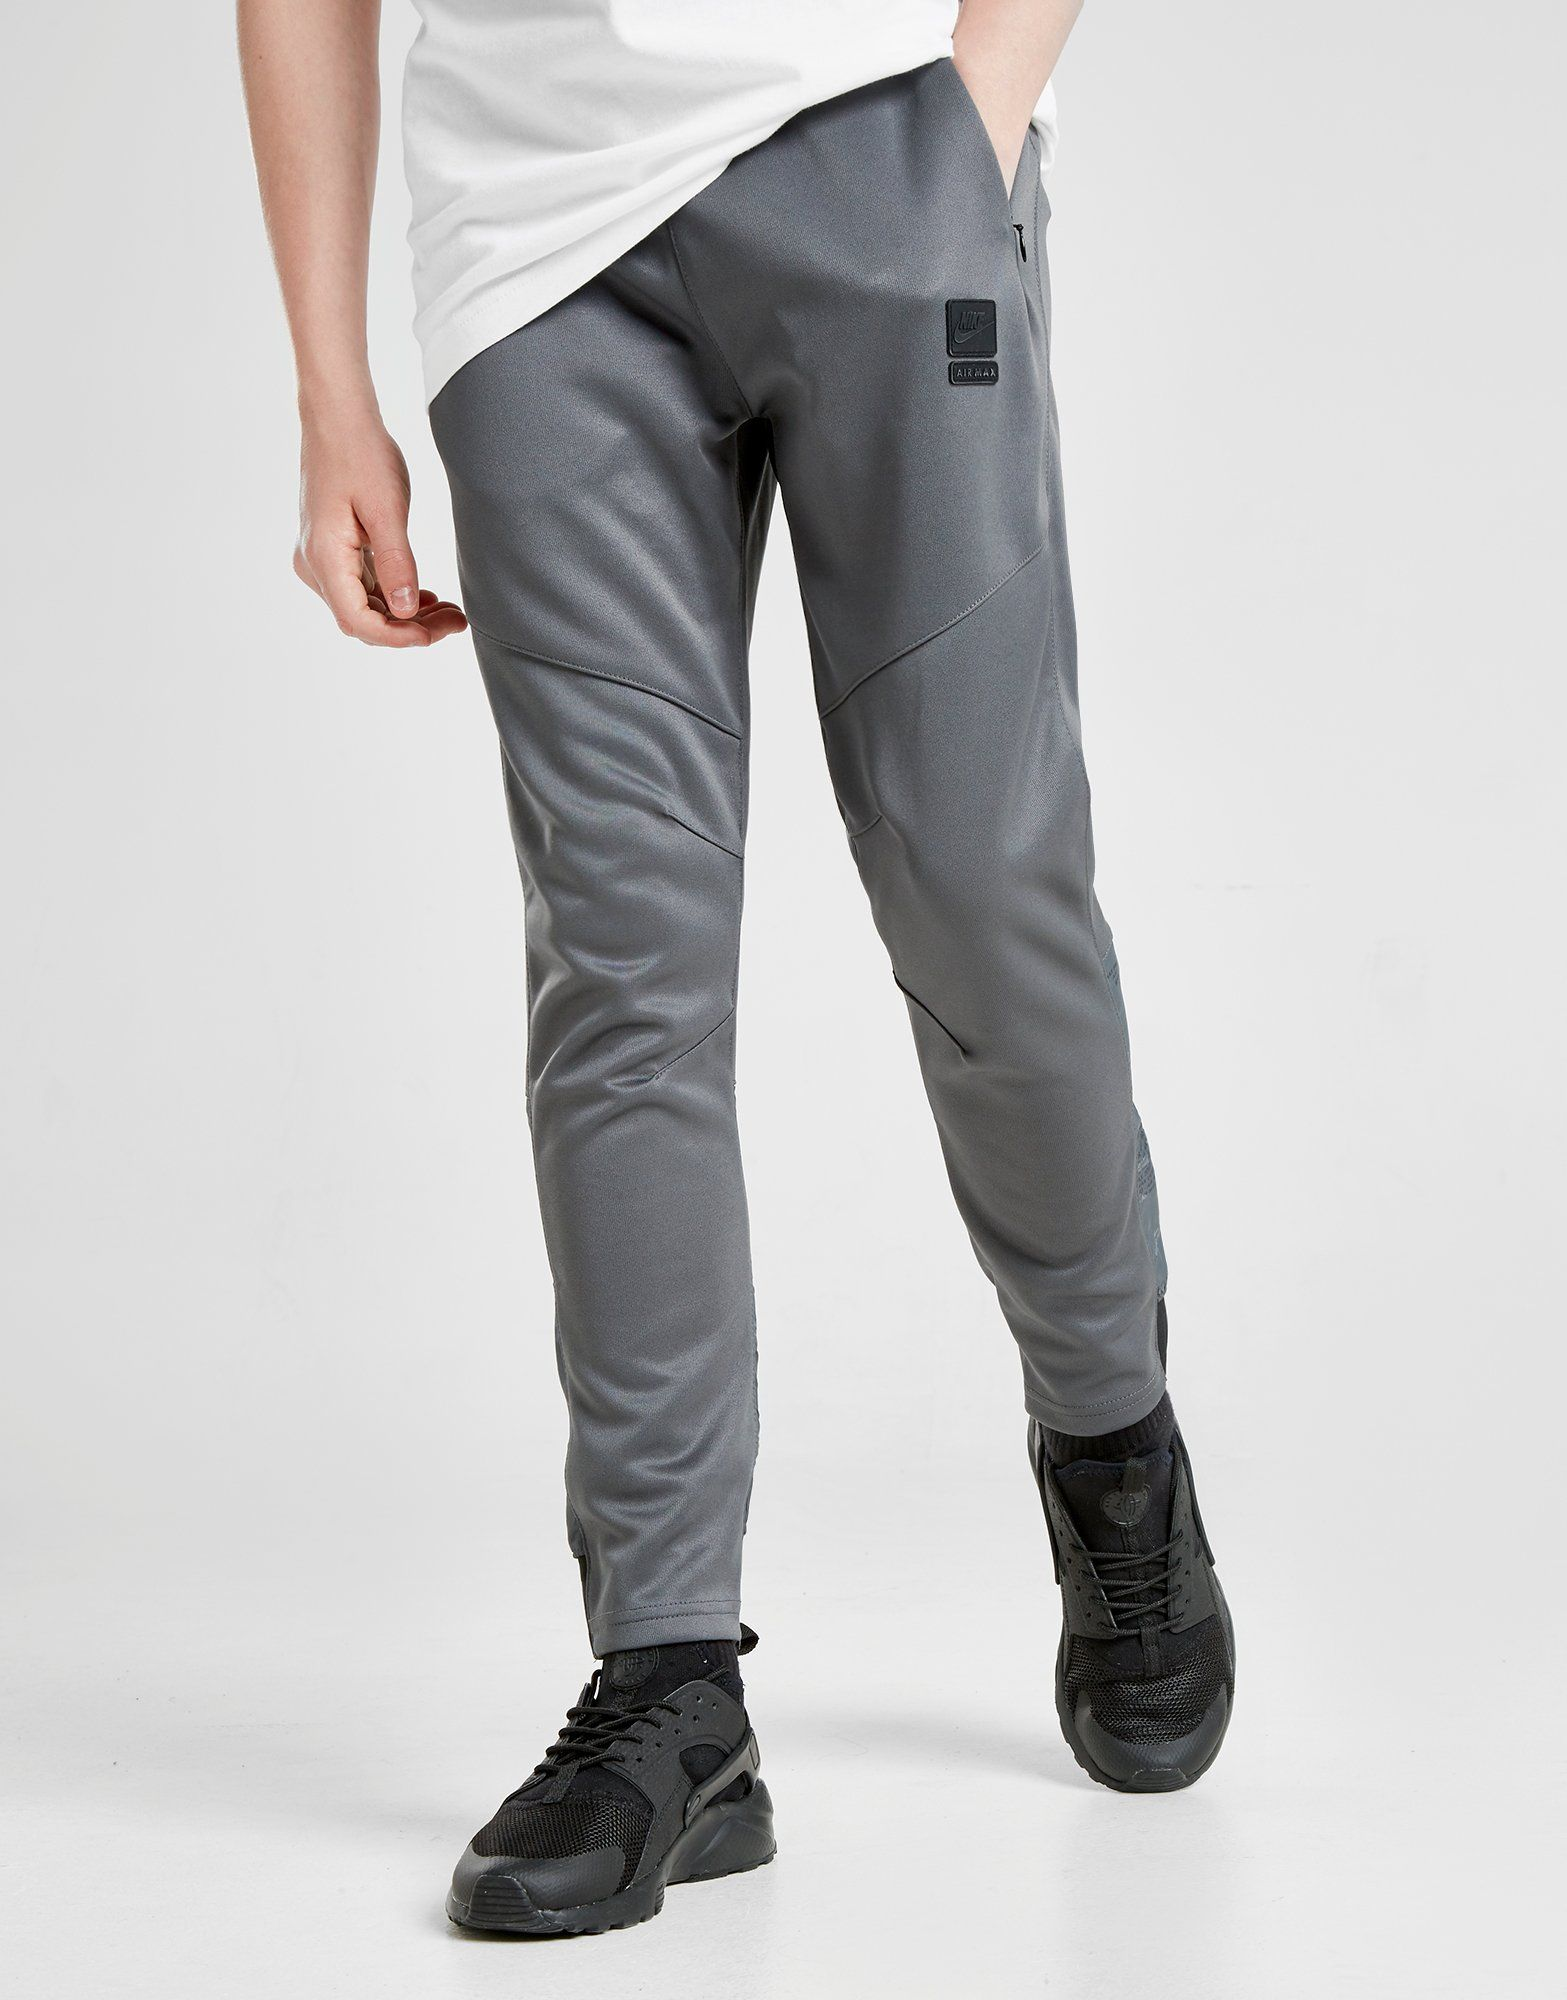 reputable site 07b3f 994f6 NIKE Nike Sportswear Older Kids  (Boys ) Joggers